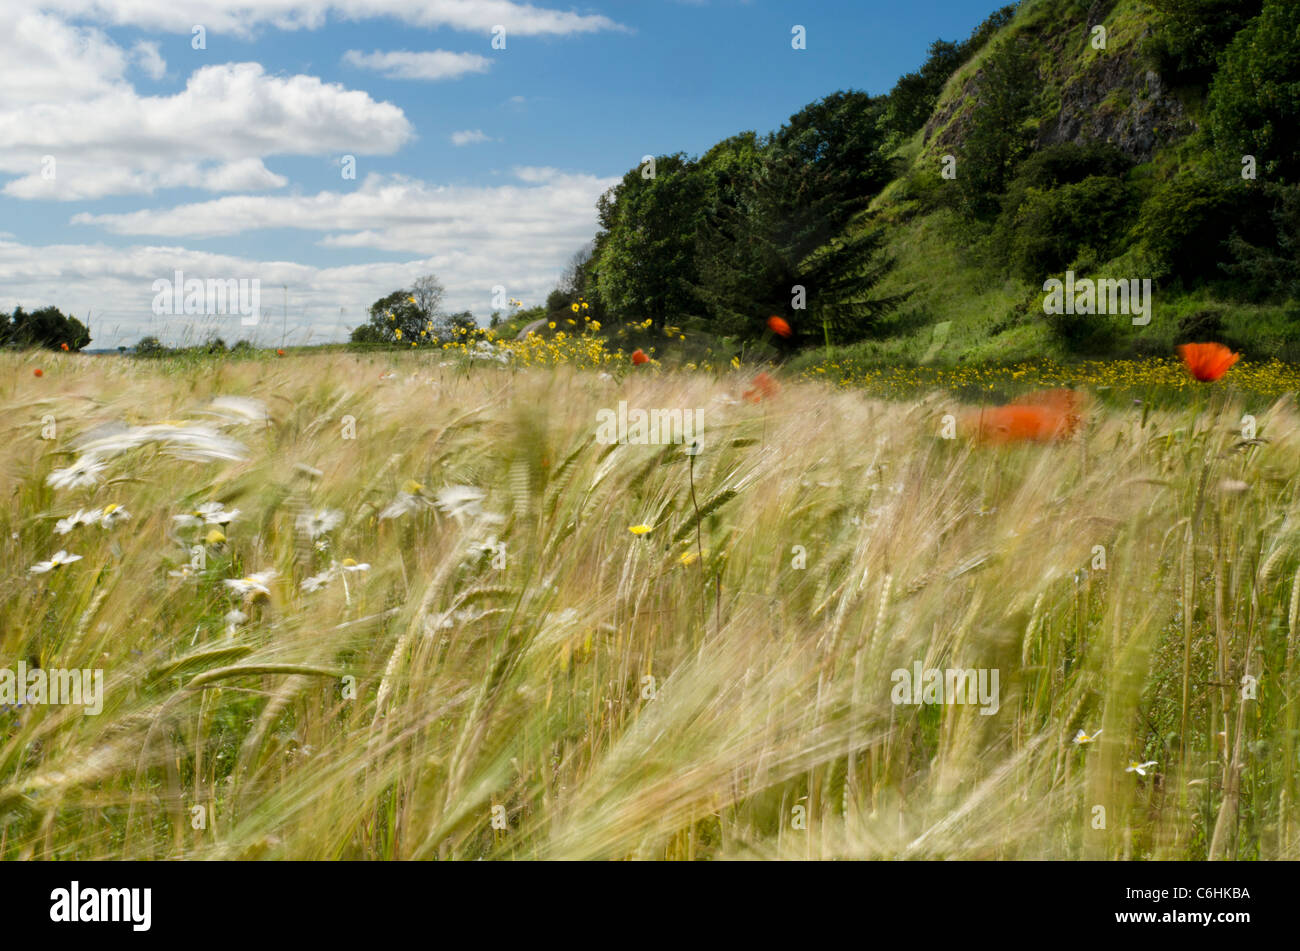 Poppies, barley and daisies in windy wildflower meadow at St Cyrus Nature Reserve Kincardineshire - Stock Image